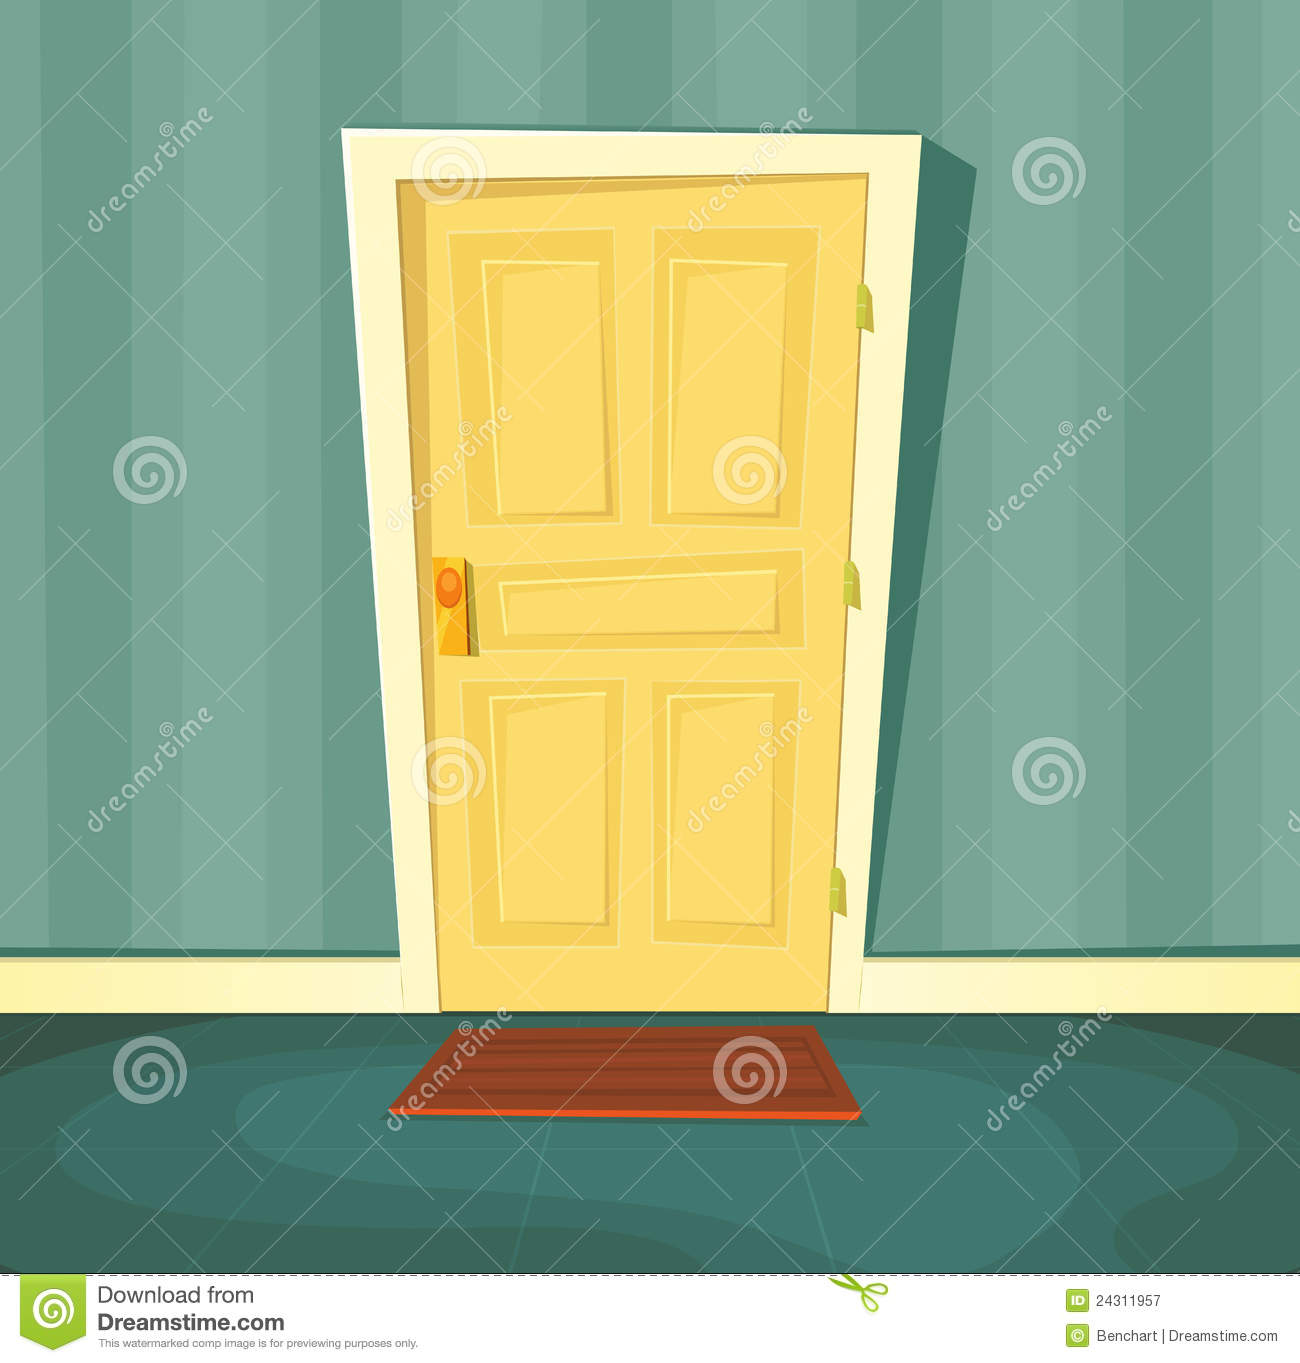 Inside front door clipart - Cartoon Front Door Royalty Free Stock Photography Image